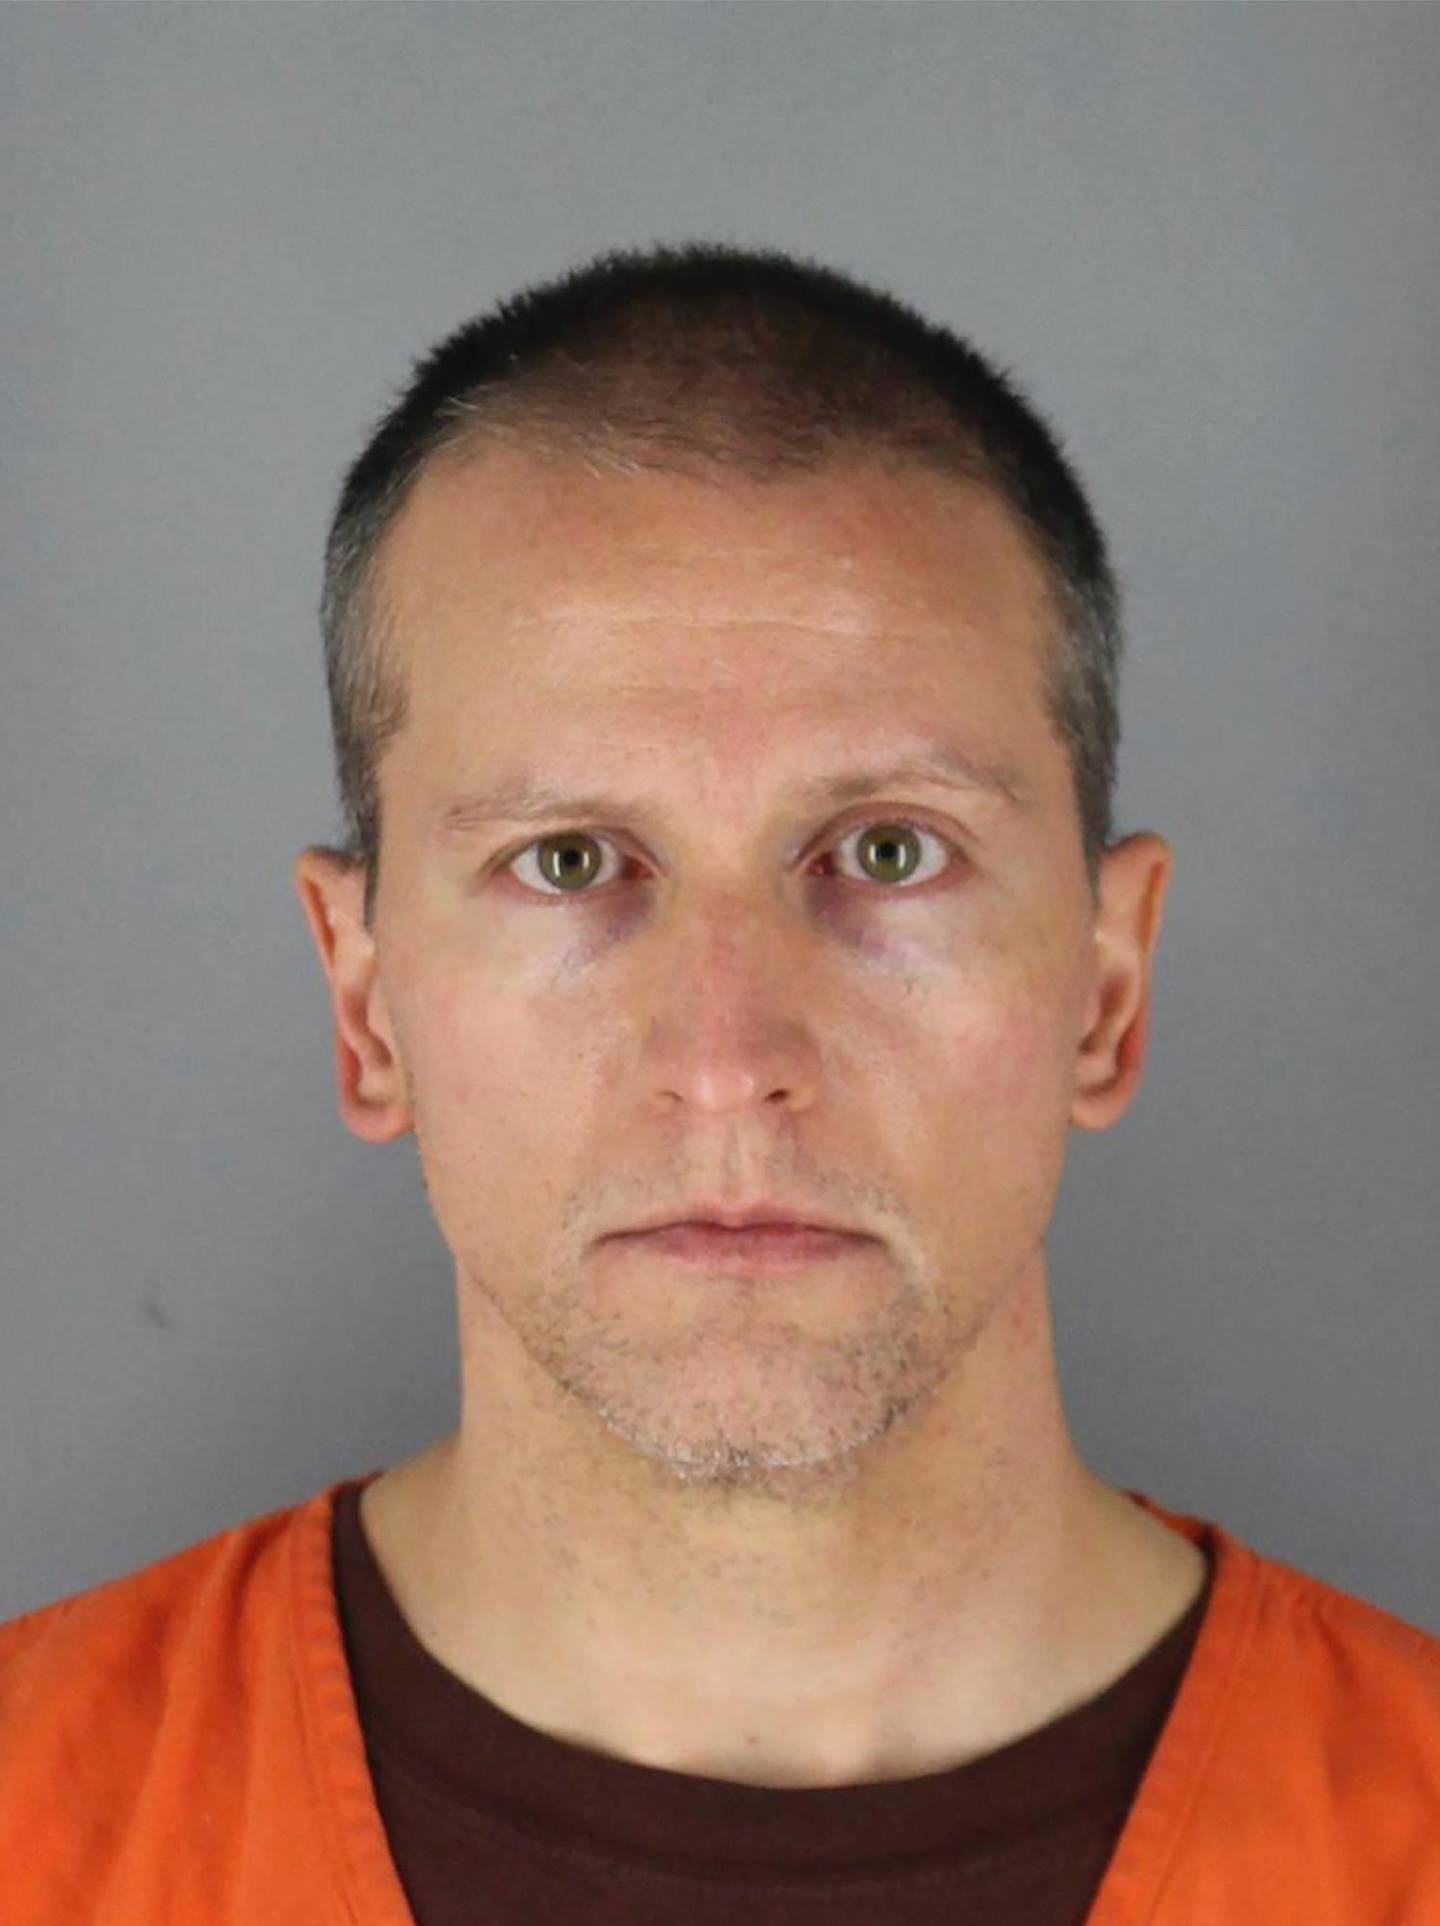 This May 31, 2020 photo provided by the Hennepin County Sheriff shows Derek Chauvin, who was arrested Friday, May 29, in the Memorial Day death of George Floyd. Chauvin was charged with third-degree murder and second-degree manslaughter after a shocking video of him kneeling for several minutes on the neck of Floyd, a black man, set off a wave of protests across the country. (Hennepin County Sheriff via AP)